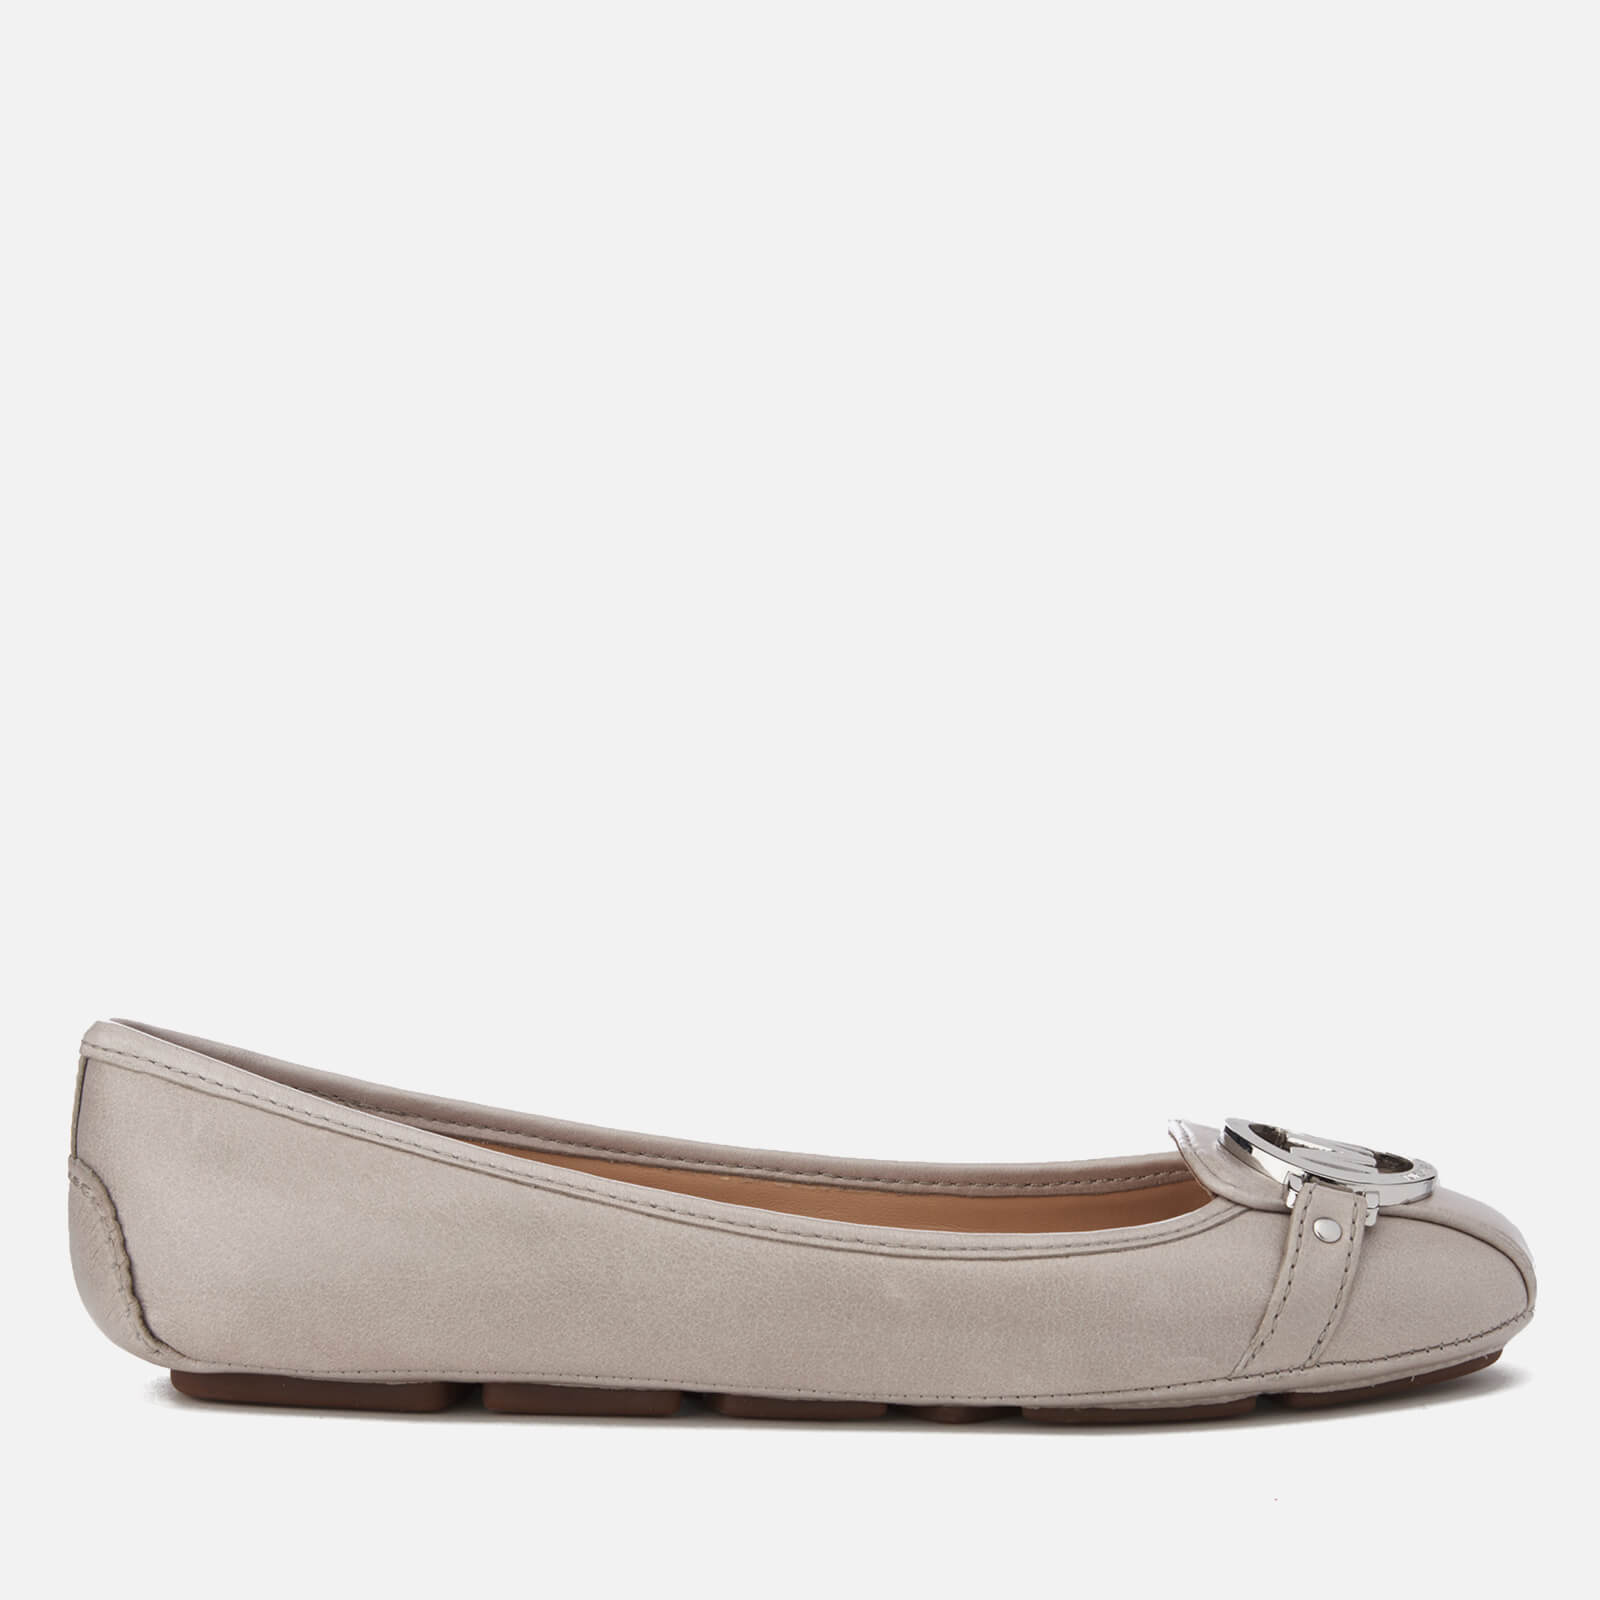 1922cc038b62 MICHAEL MICHAEL KORS Women s Fulton Leather Ballet Flats - Pearl Grey -  Free UK Delivery over £50